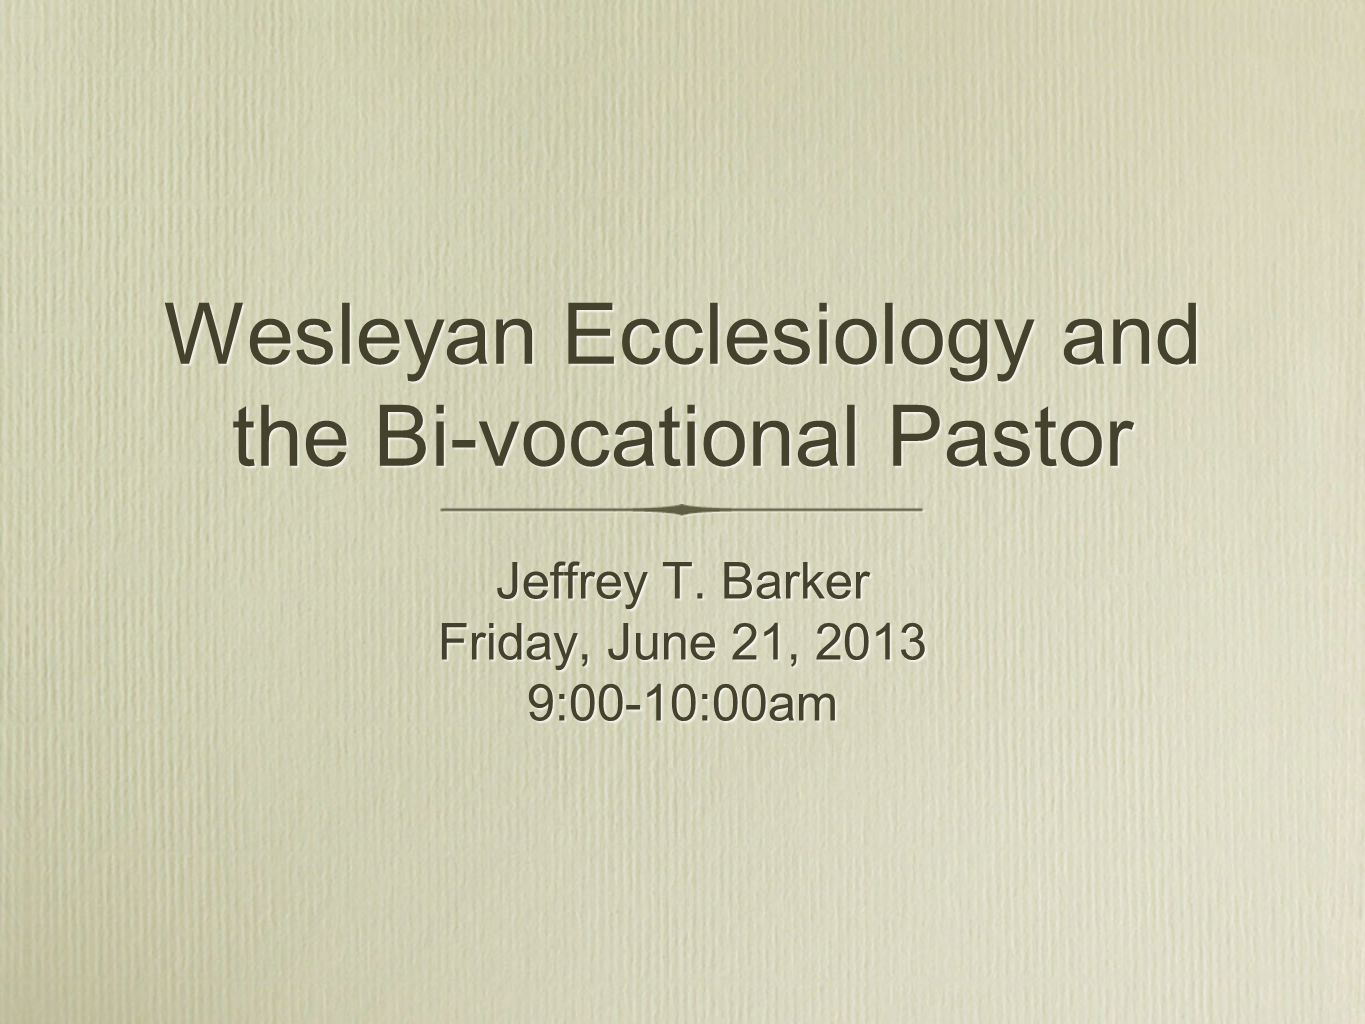 First Steps Both the joy and challenge of bi-vocational ministry must be shared throughout the denominational structure.